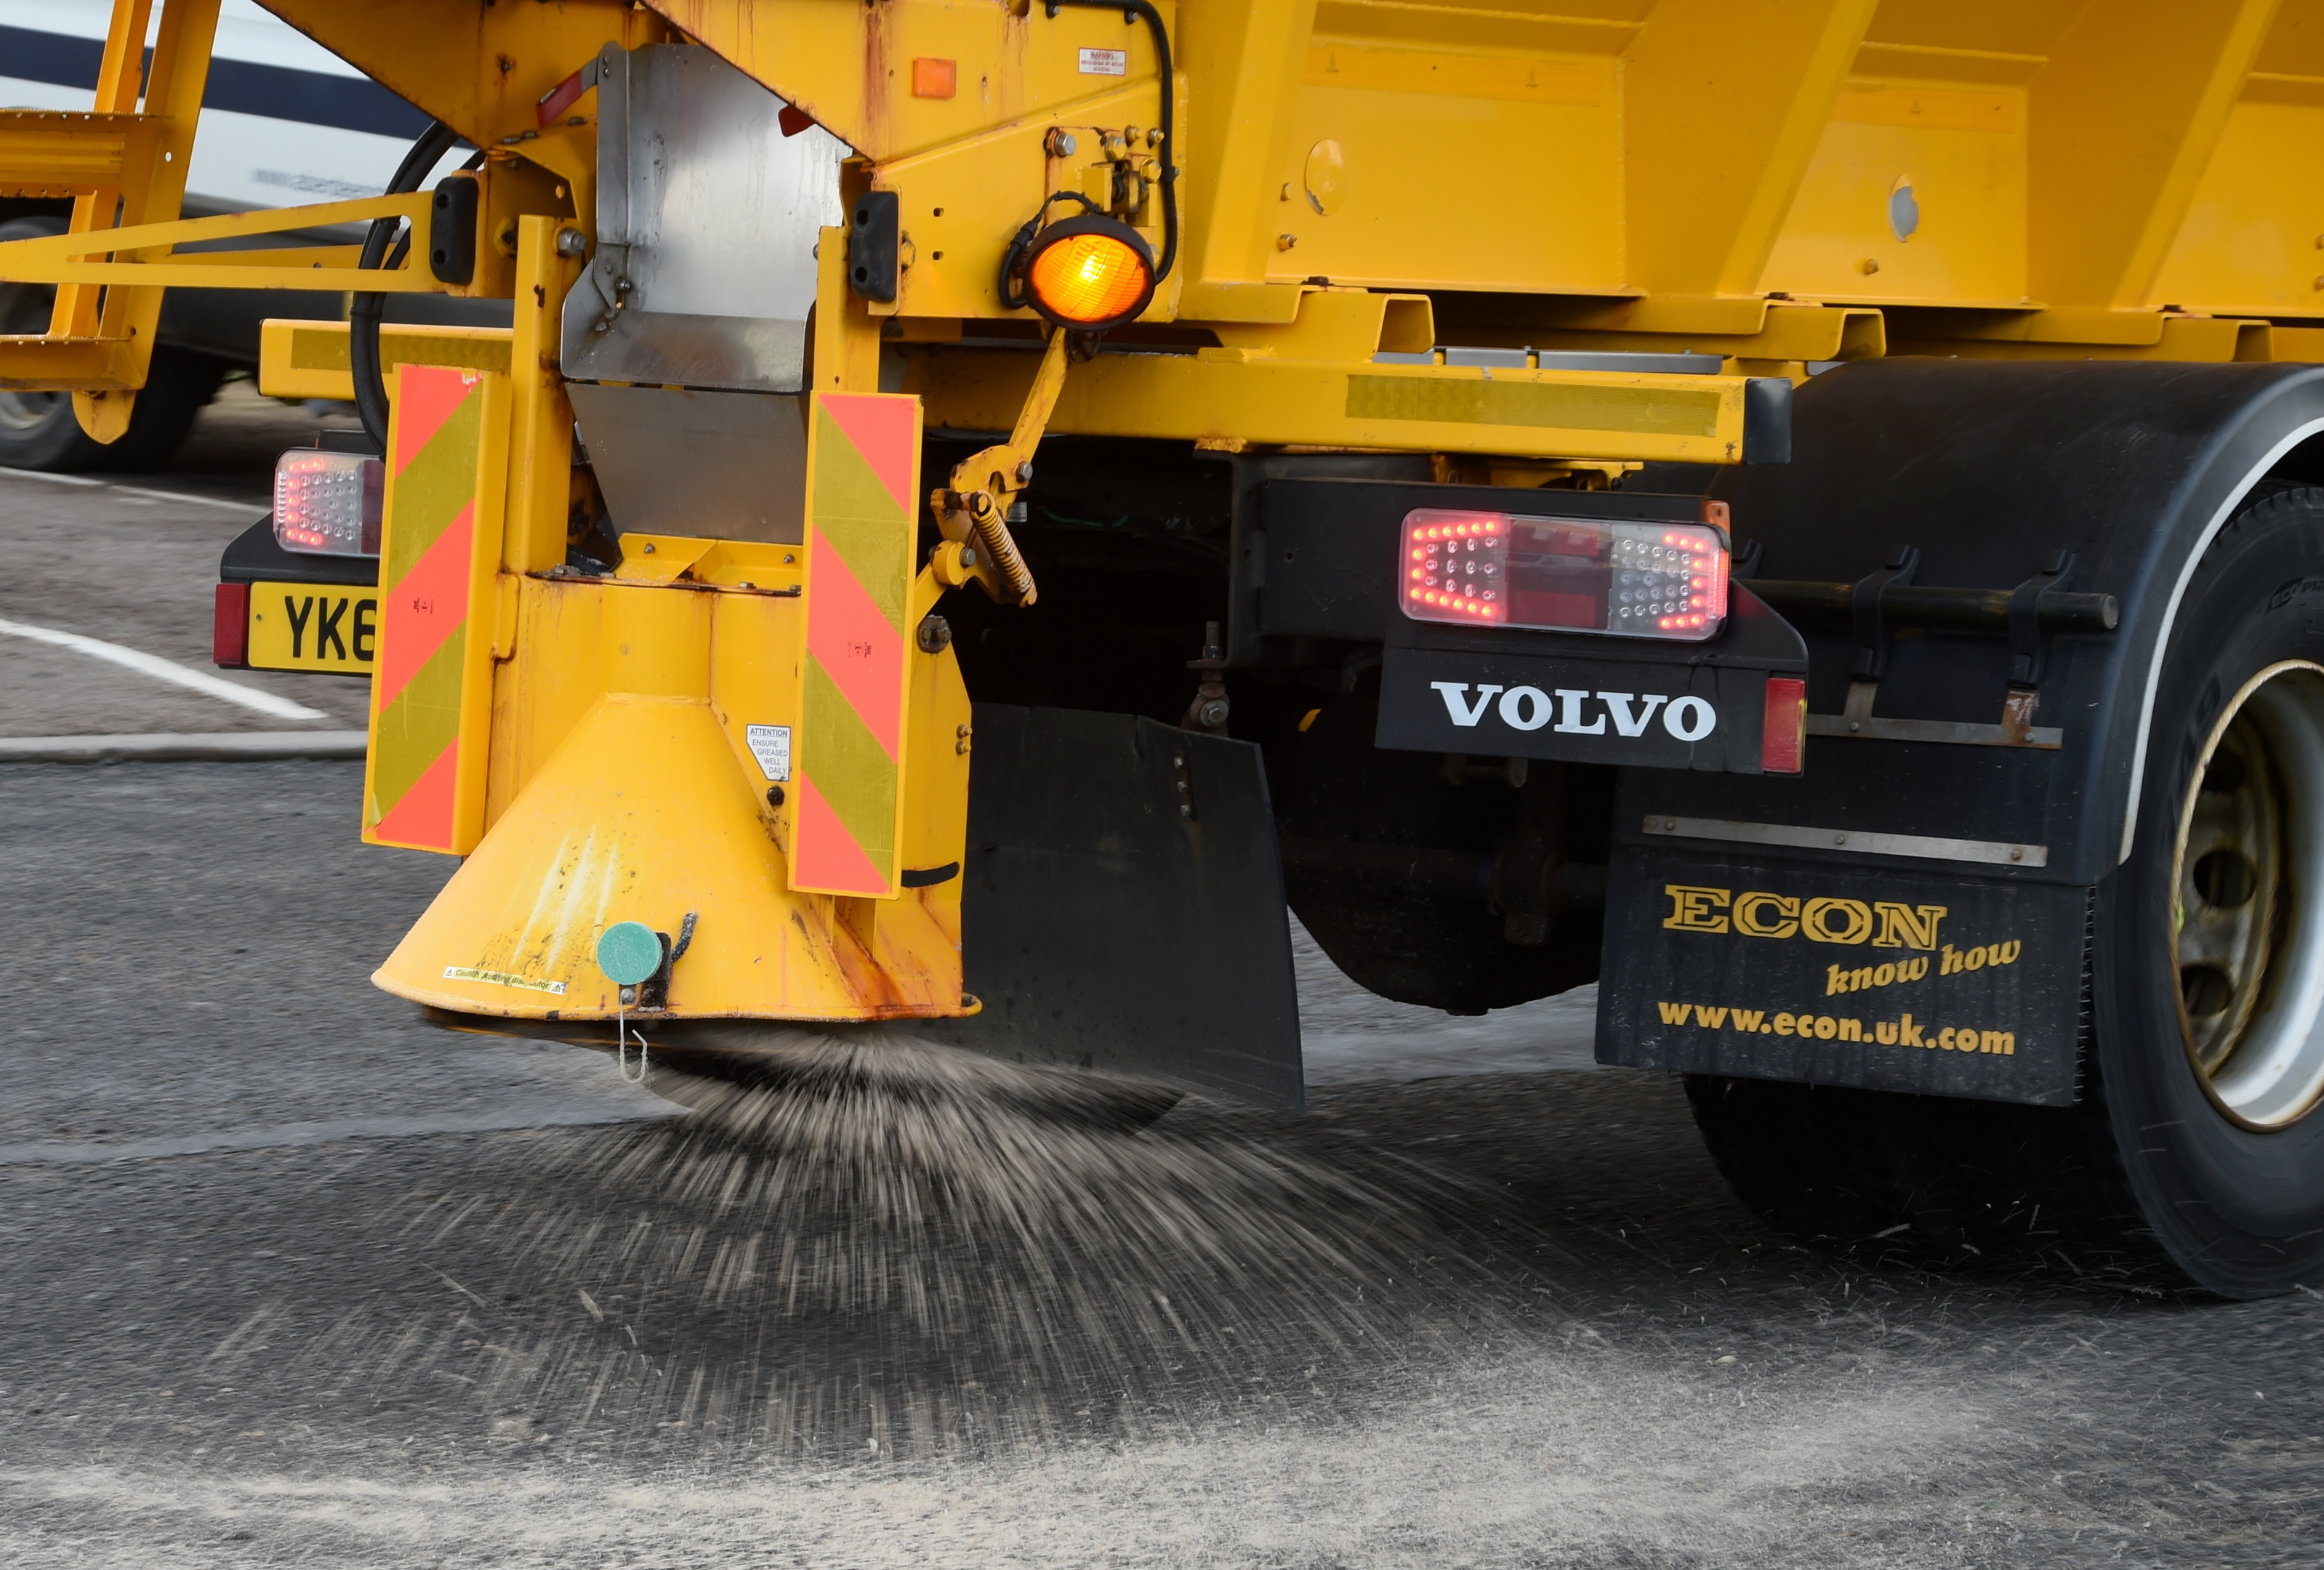 North council under fire for asking residents to grit pavements